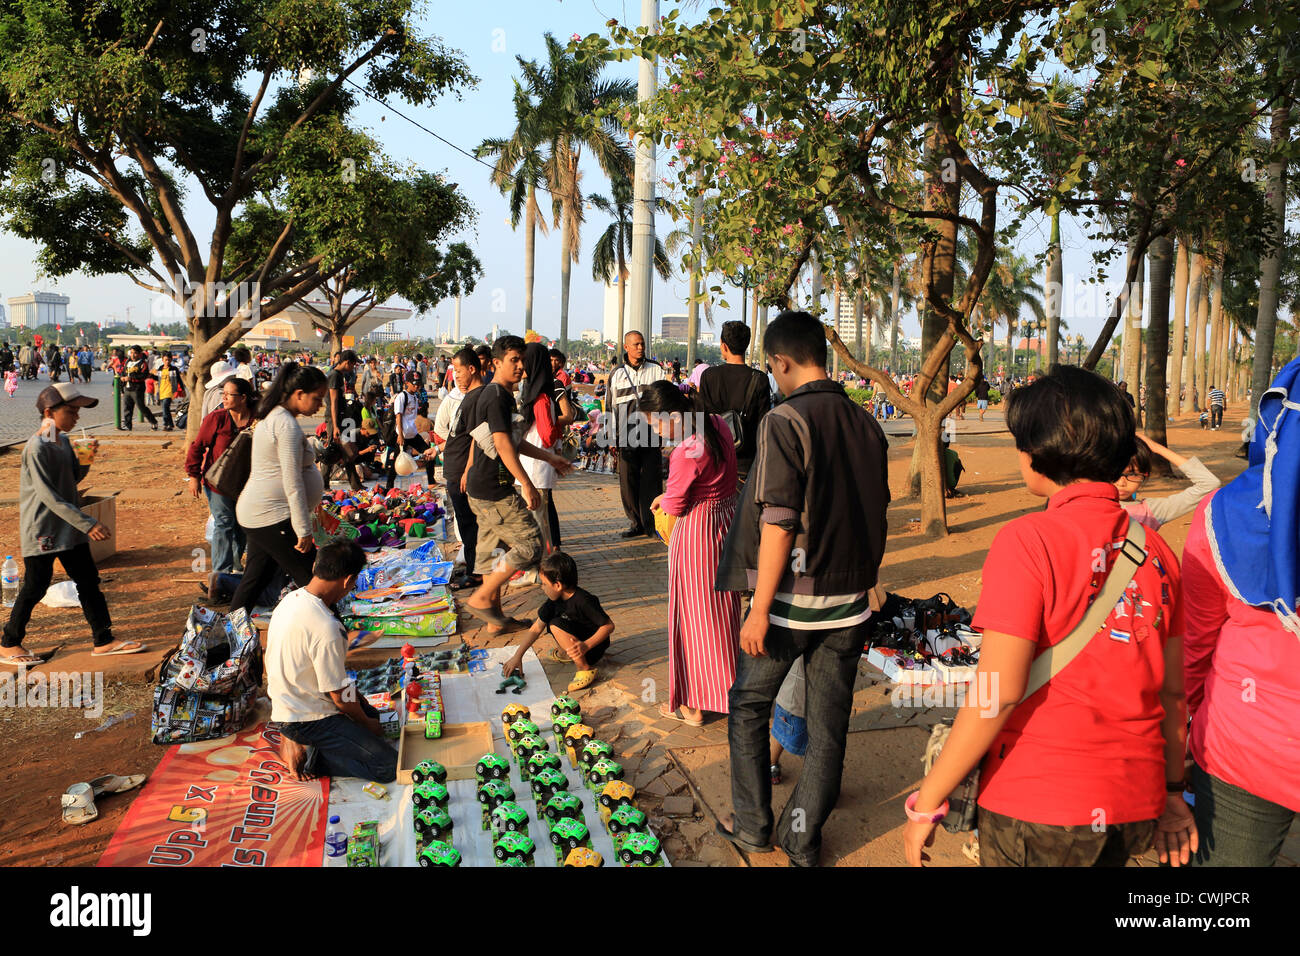 Market stalls in Merdeka Square during Ramadan celebrations. - Stock Image